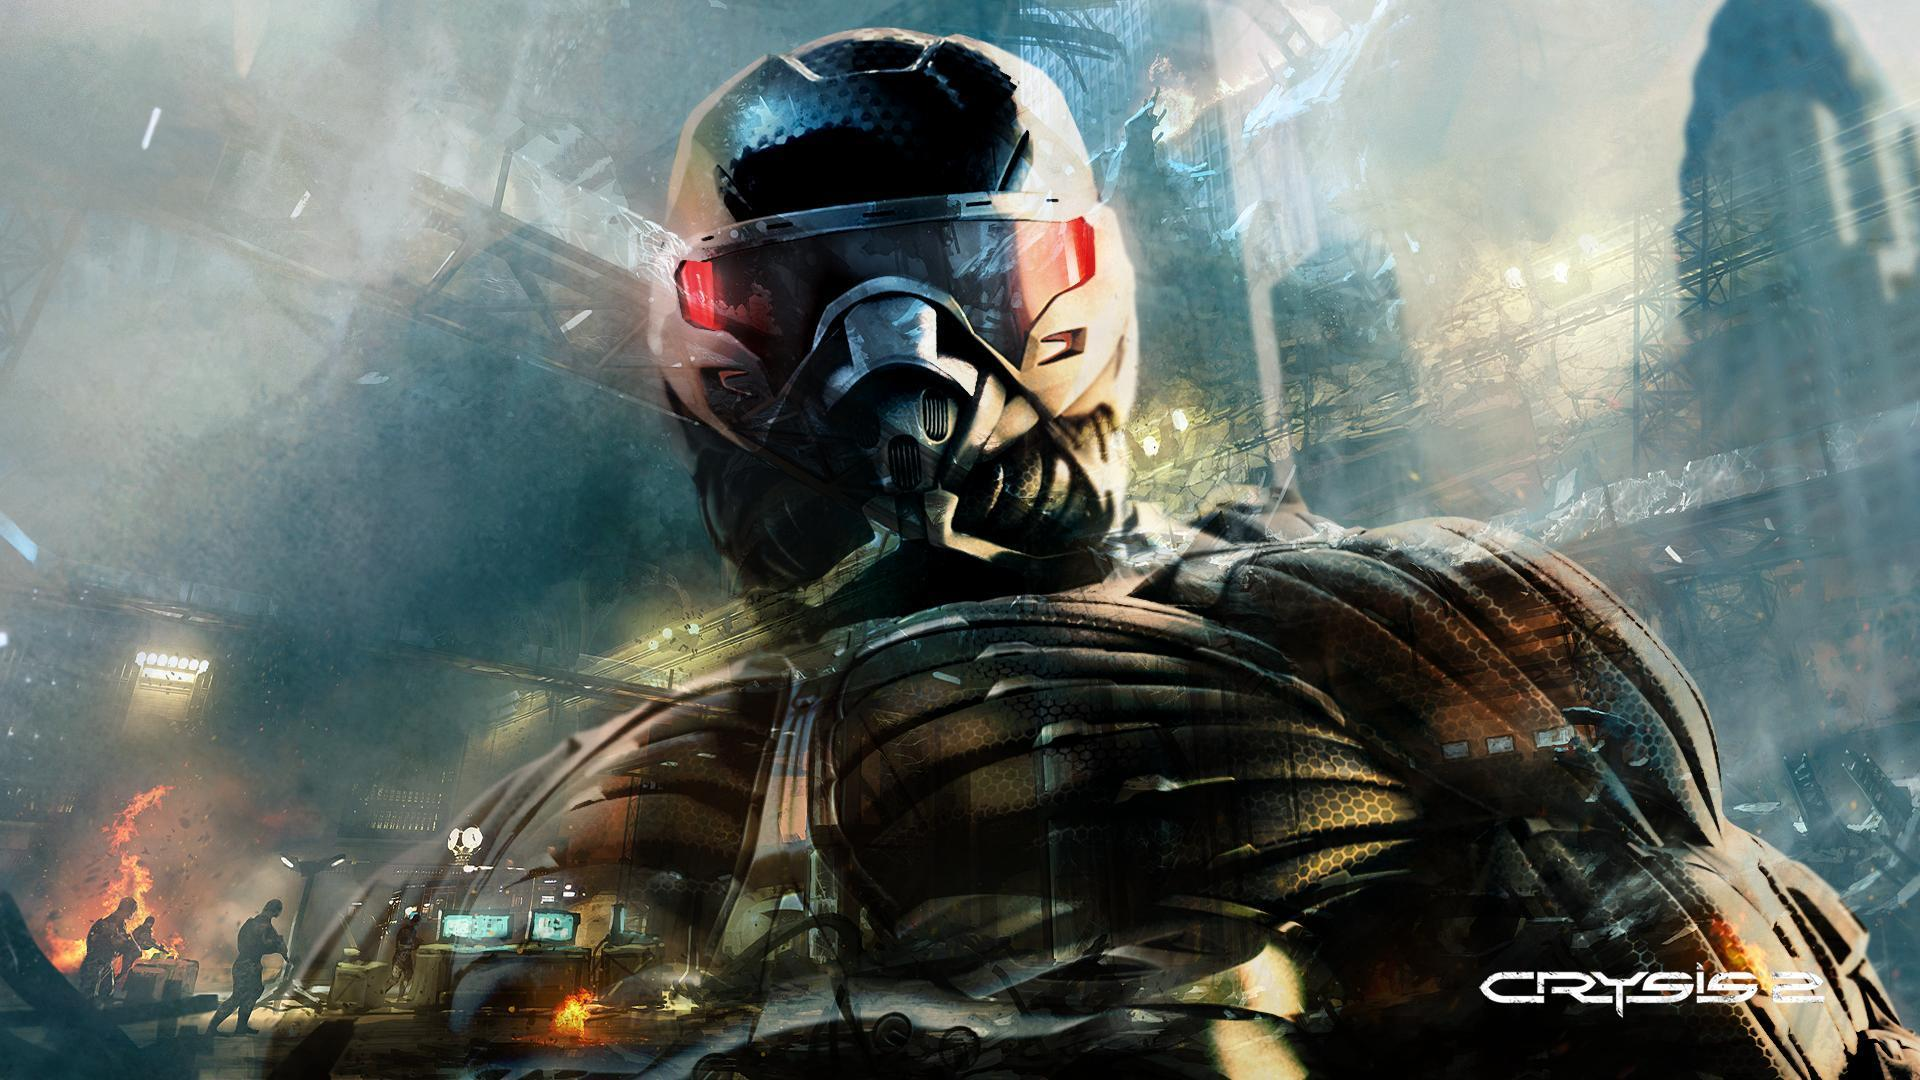 crysis 4 wallpaper hd - photo #31